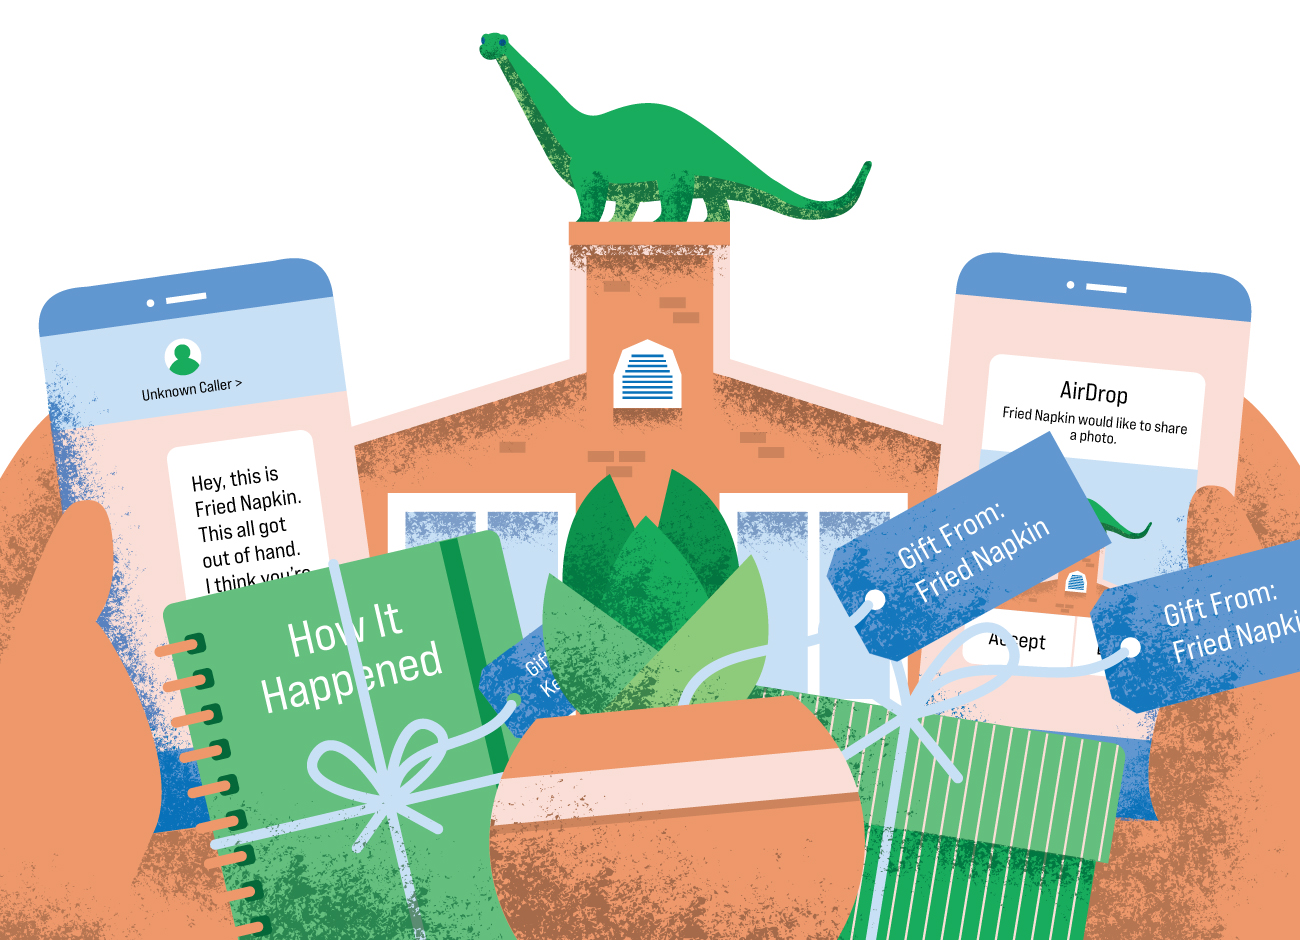 a collage of illustrated presents, a notebook, two phones with text messages, a succulent, and a cartoon dinosaur atop a building